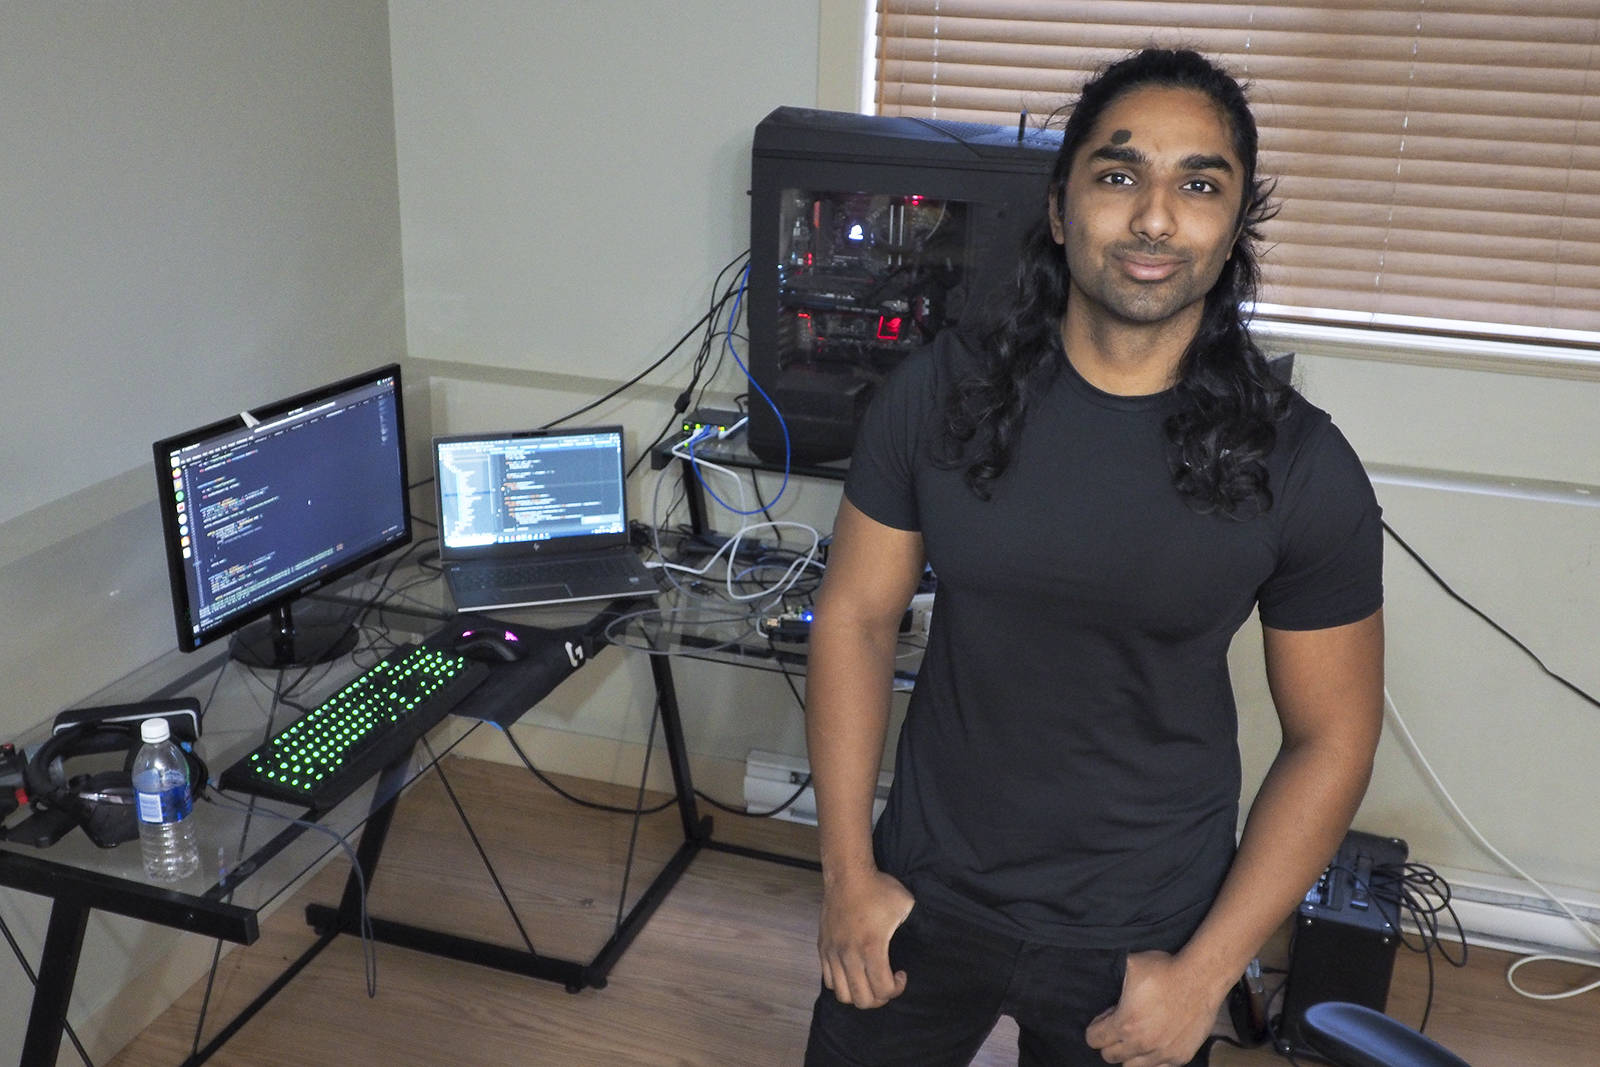 Ahmad Naveed, a mechanical engineer from Nanaimo, has created Nanaimo Thief Tracking, an online application that allows anyone to plot locations and share details about thefts. So far, the application has helped a stolen patio heater be returned to its owner. (CHRIS BUSH/The News Bulletin)